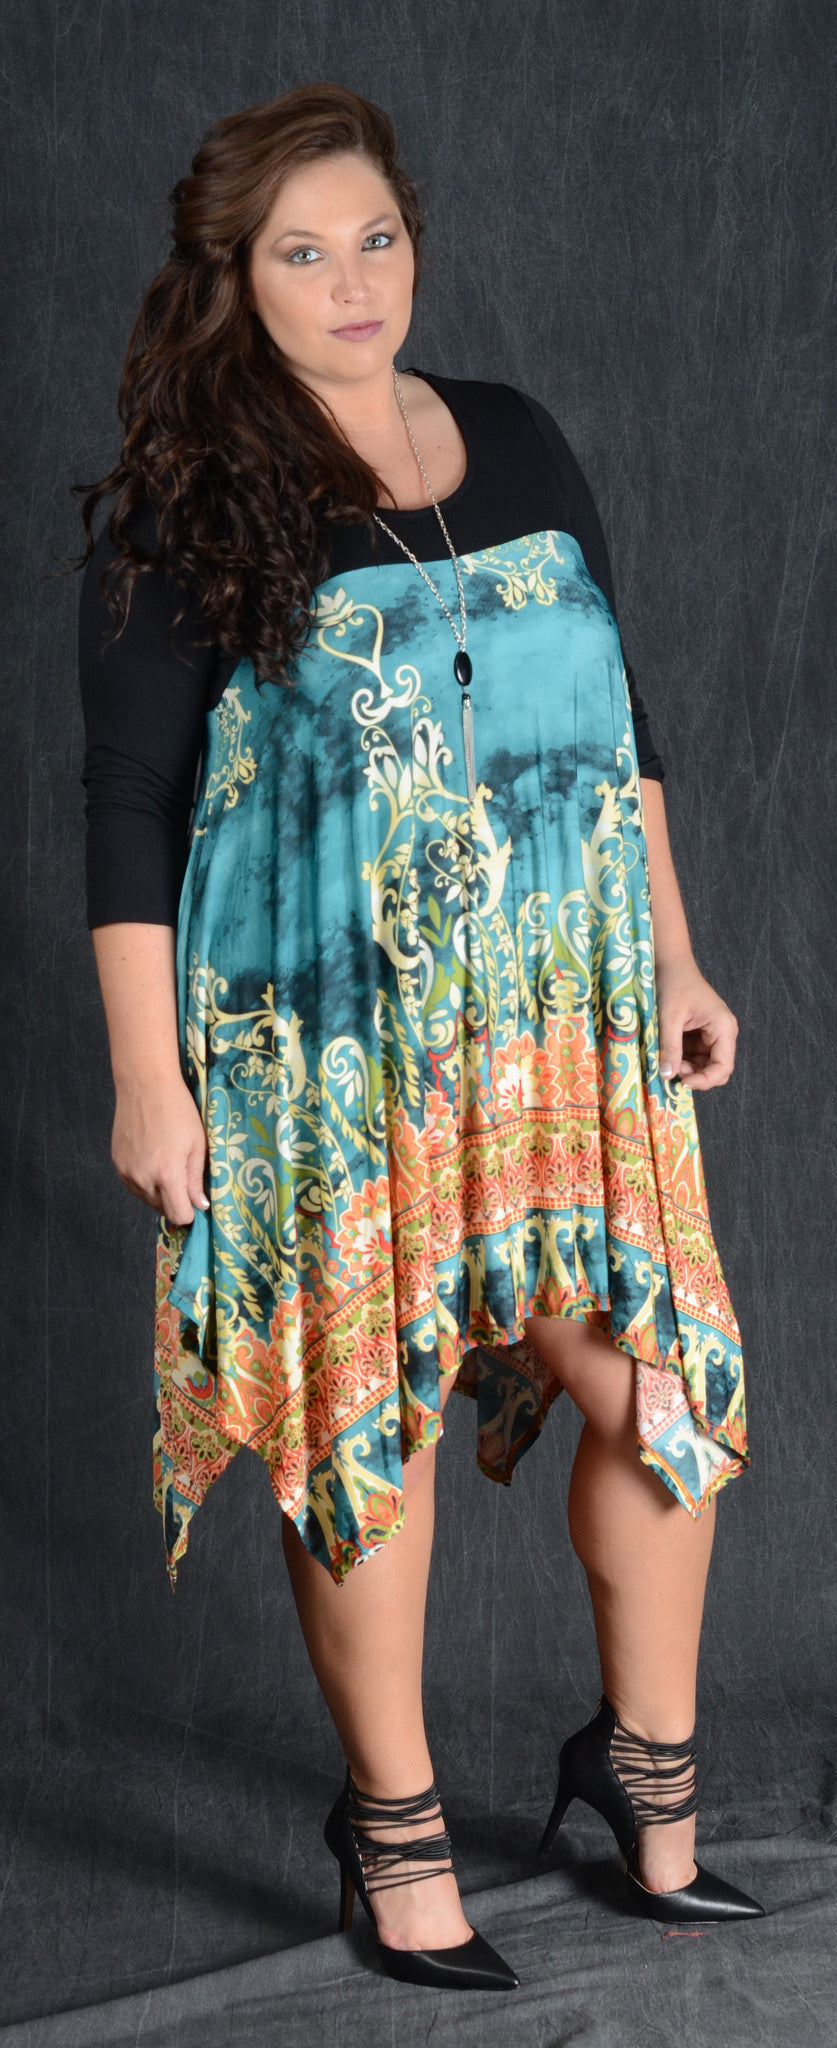 Teal Damask Contrast Dress - Curvy Plus Size Boutique - 2